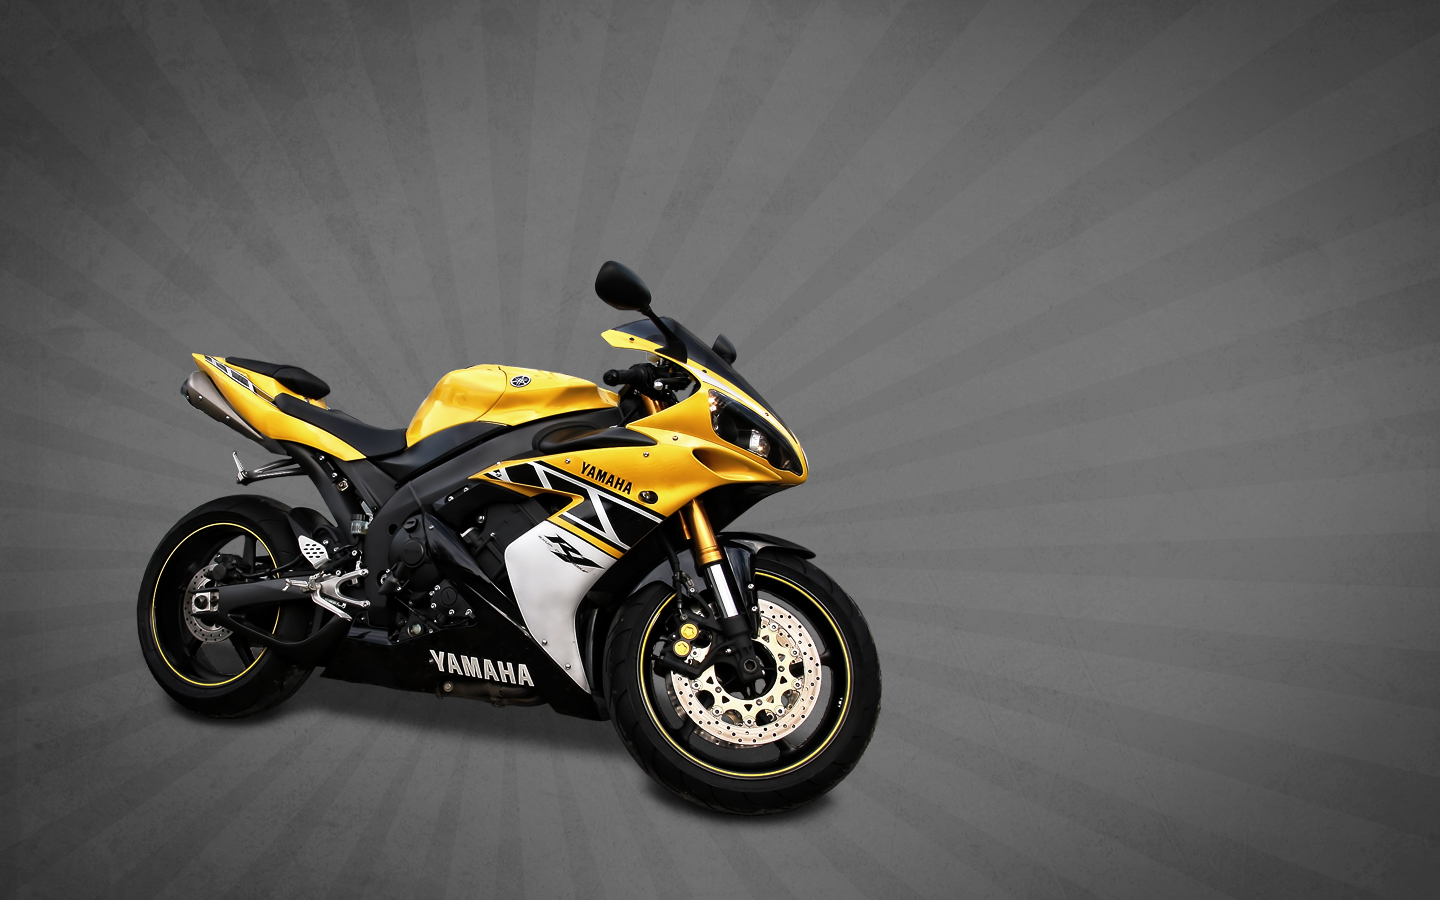 Yamaha r1 Logo Wallpaper Yamaha r1 Wallpaper by